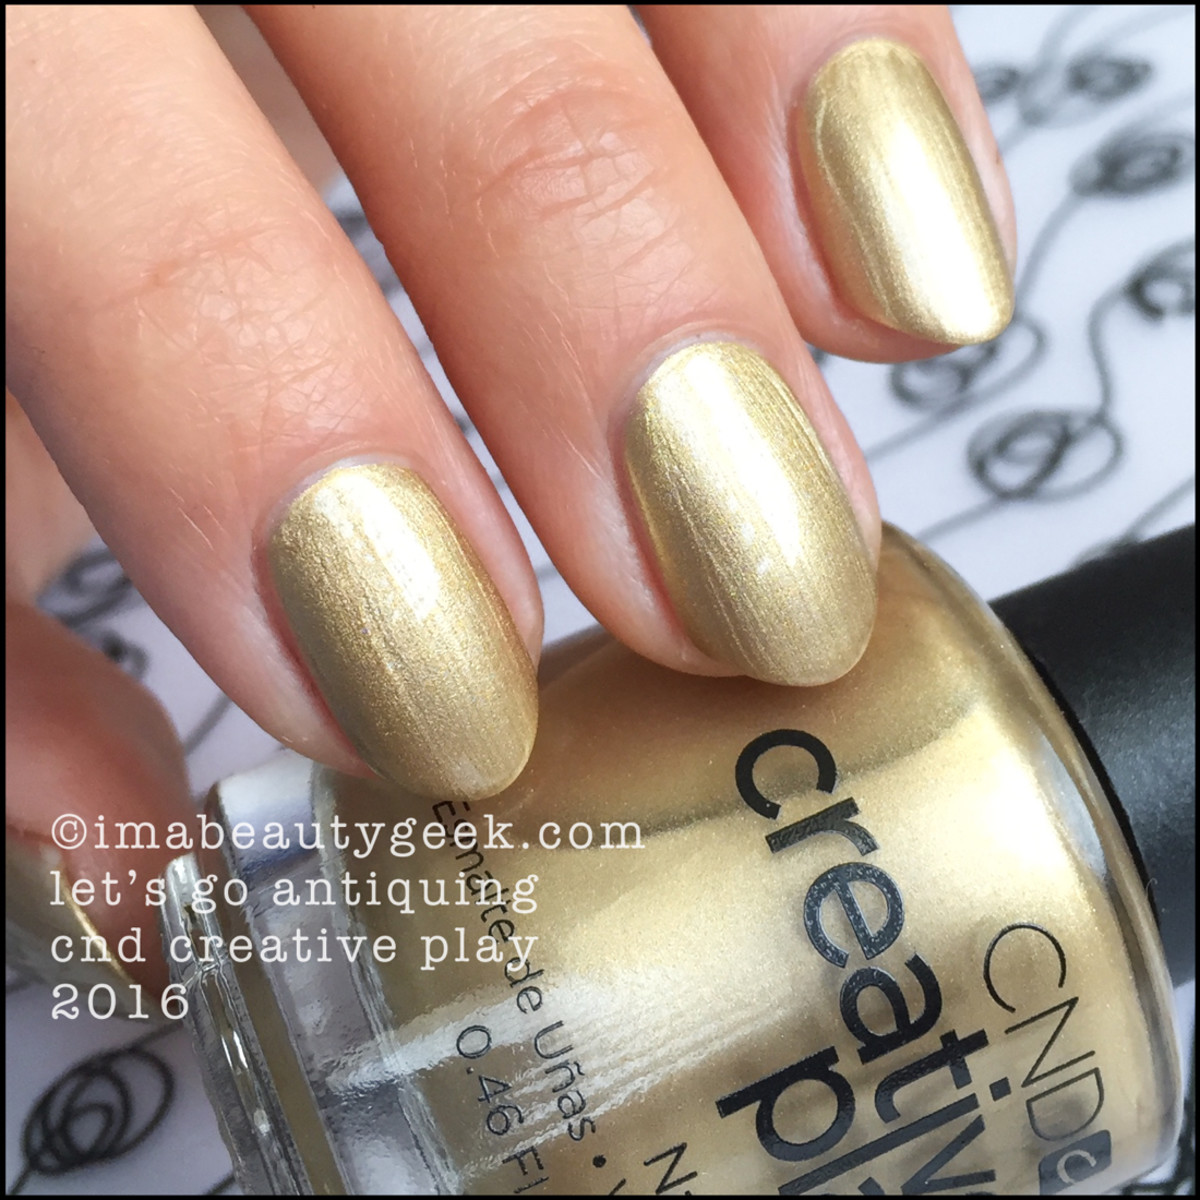 CND Creative Play Lets Go Antiquing_CND Creative Play Nail Polish Swatches